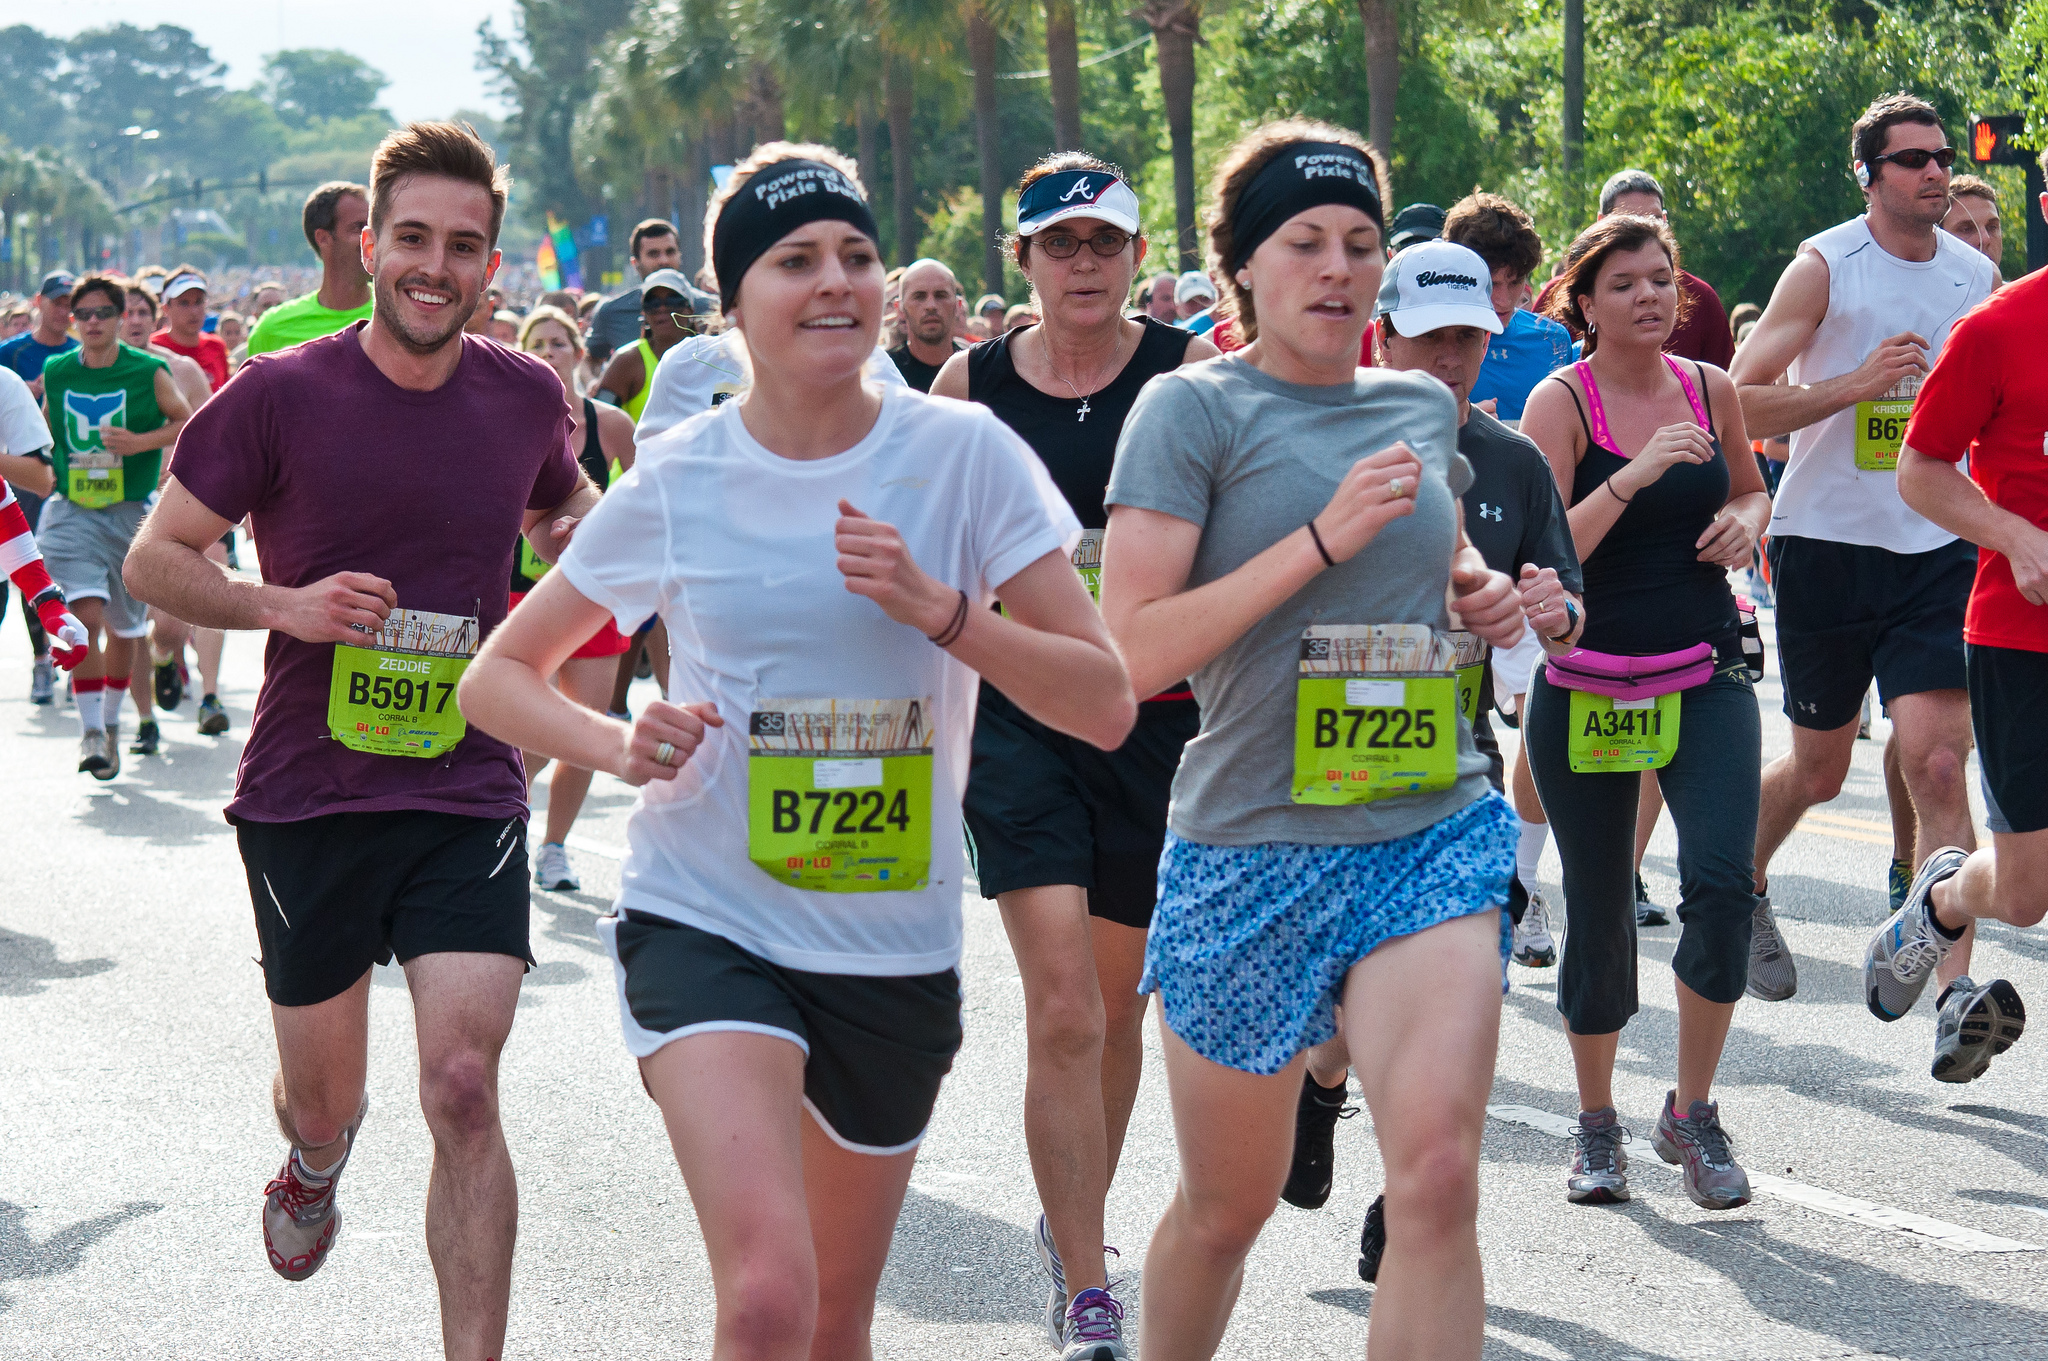 Mr Ridiculously Photogenic Guy